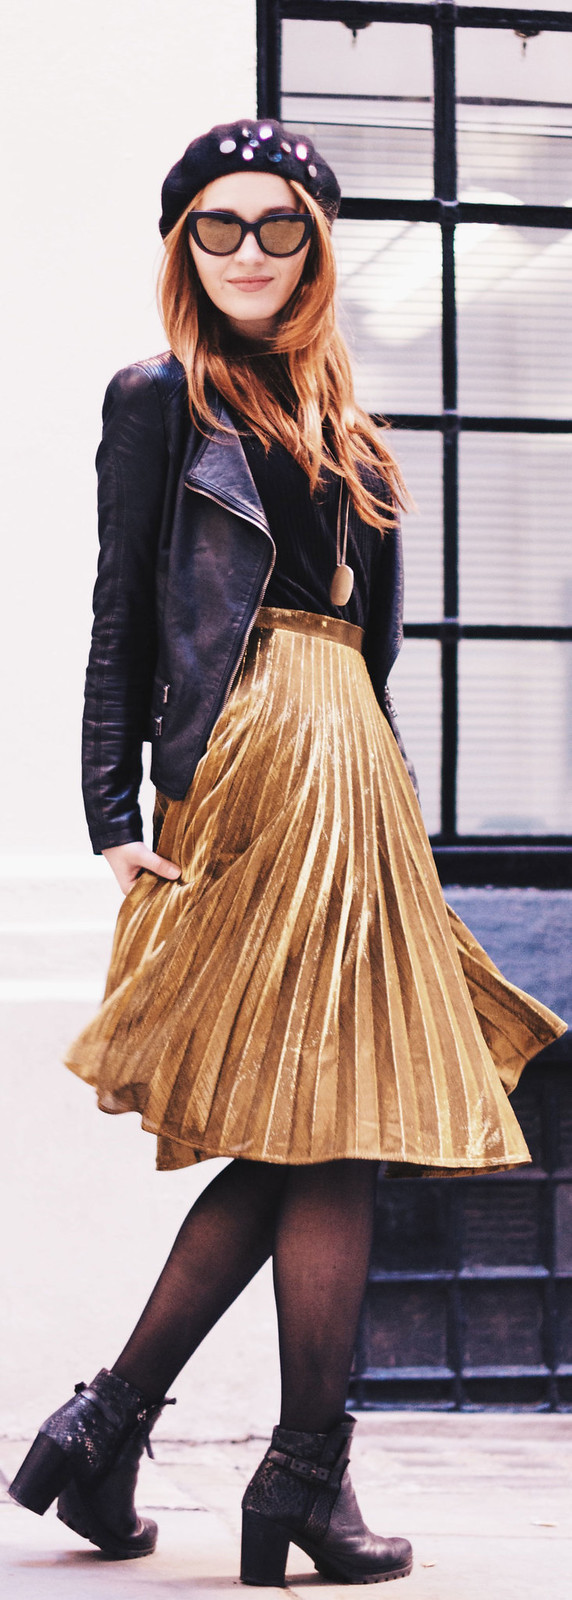 "www.fashionartista.com ""Why everyone is obsessed with the pleated metallic skirt trend"""